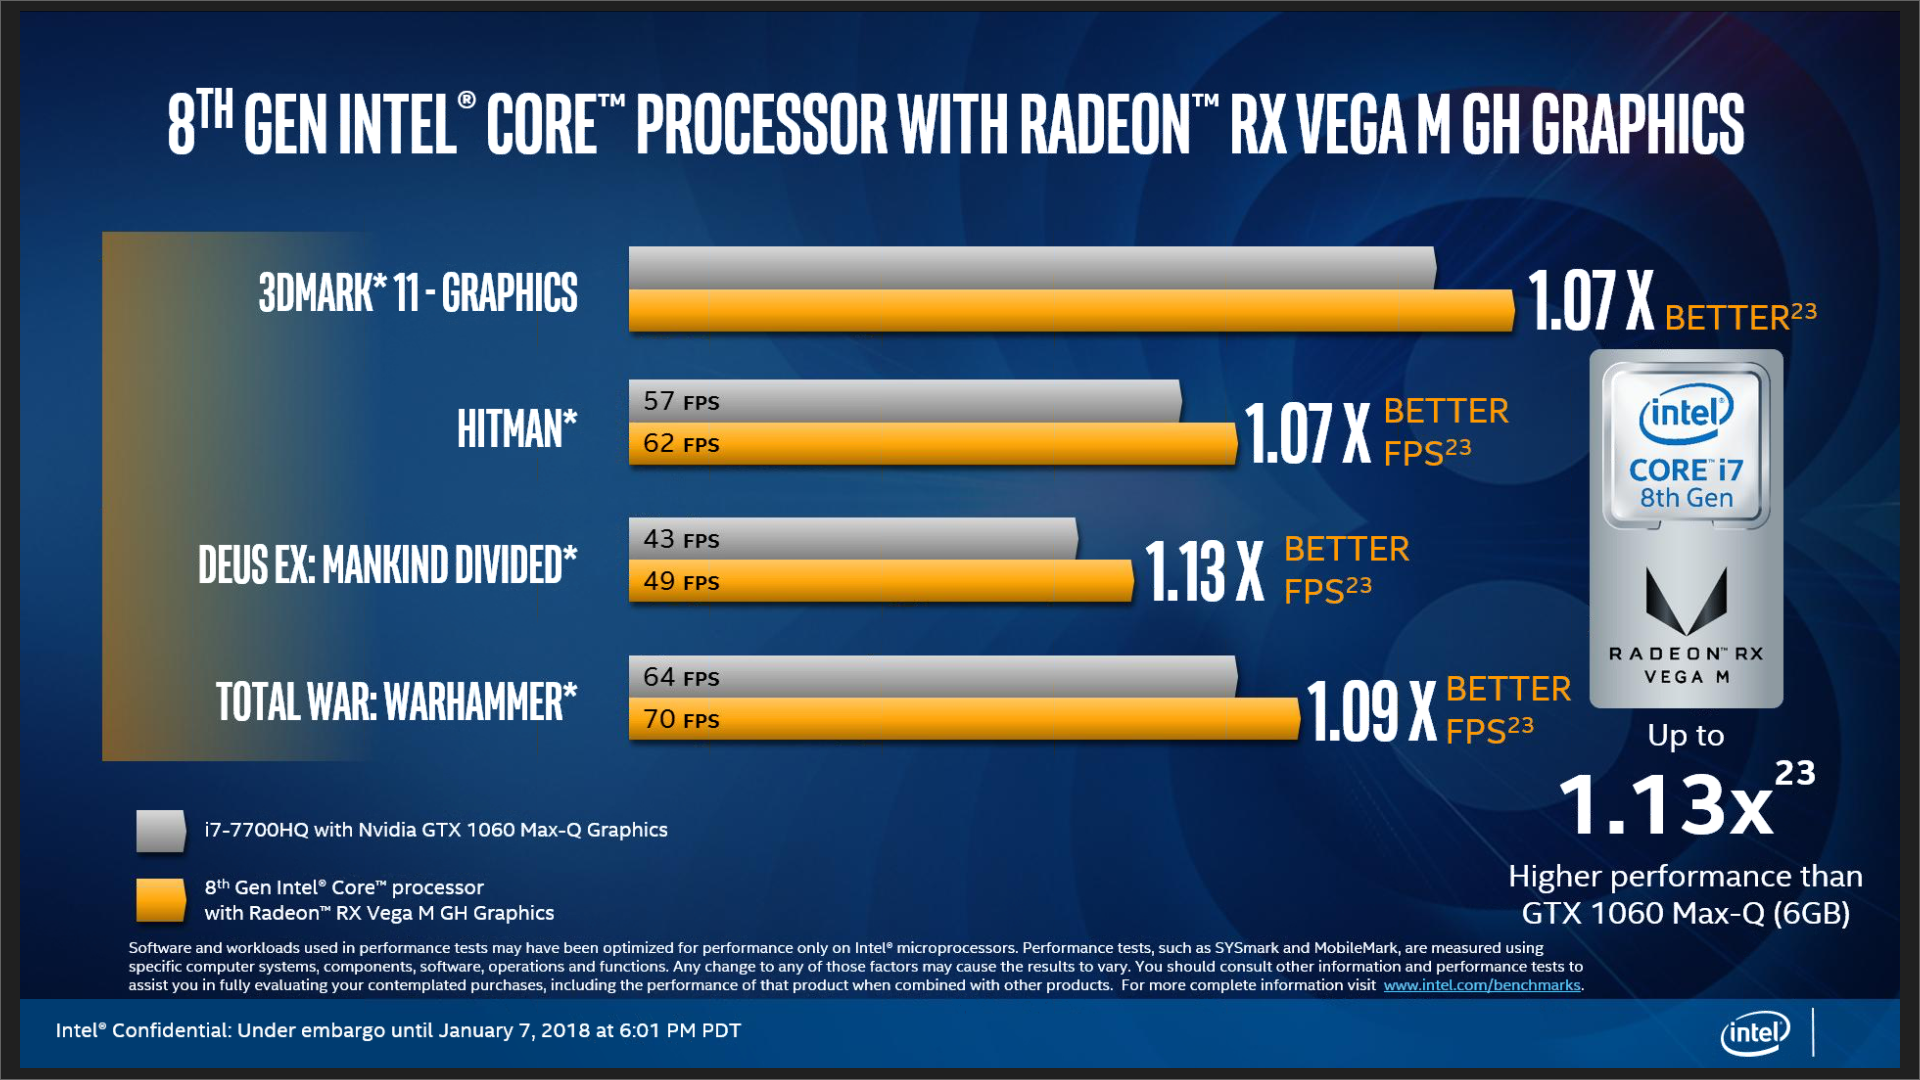 This pits the 100W, GH graphics Kaby Lake-G against a Kaby Lake-H paired with an Nvidia GTX 1060 MaxQ GPU.